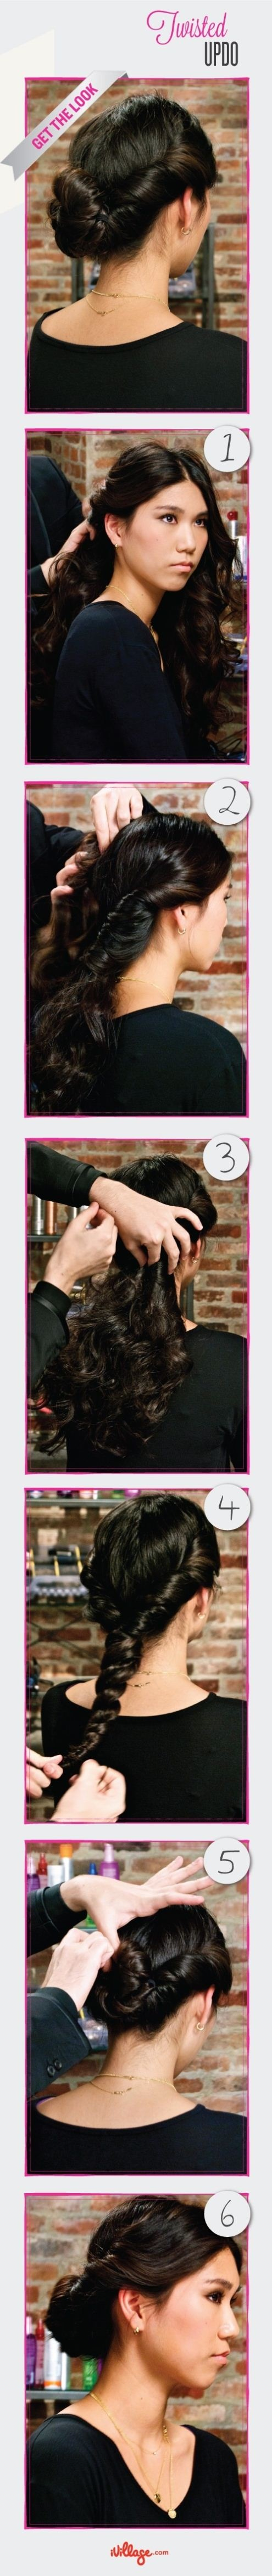 DIY Twisted Updo Hairstyle via